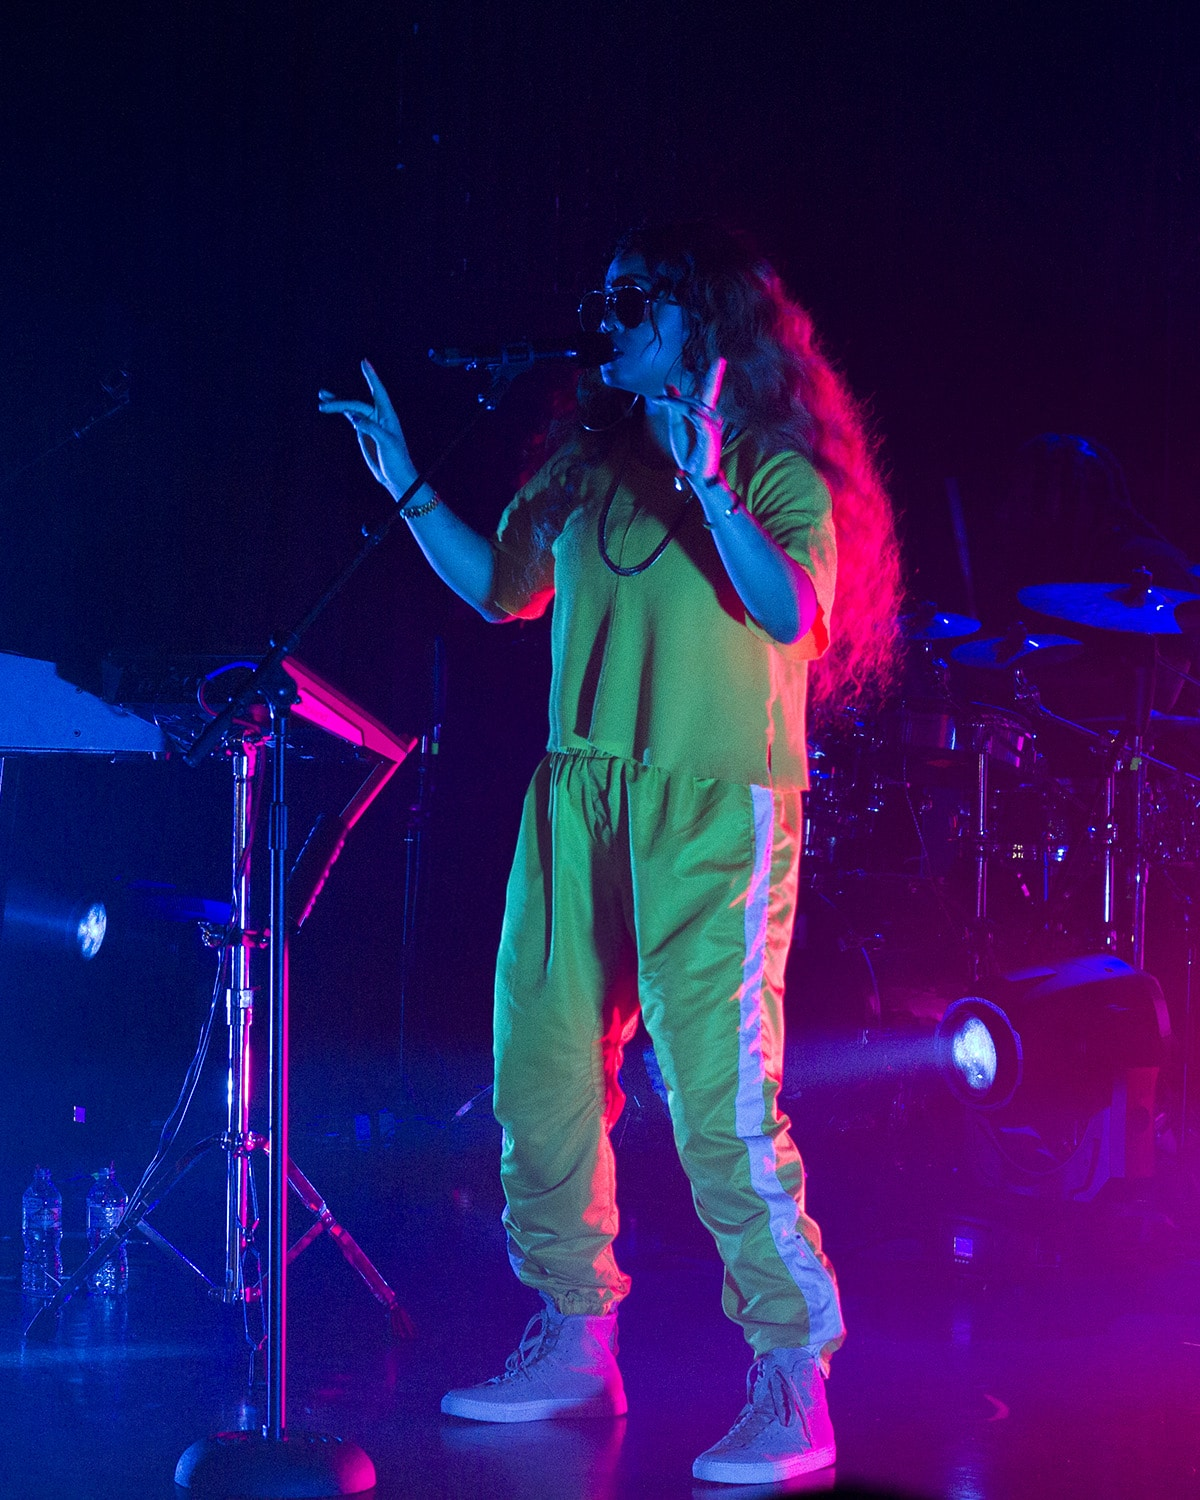 H.E.R. Live Performance at the El REY Los Angeles